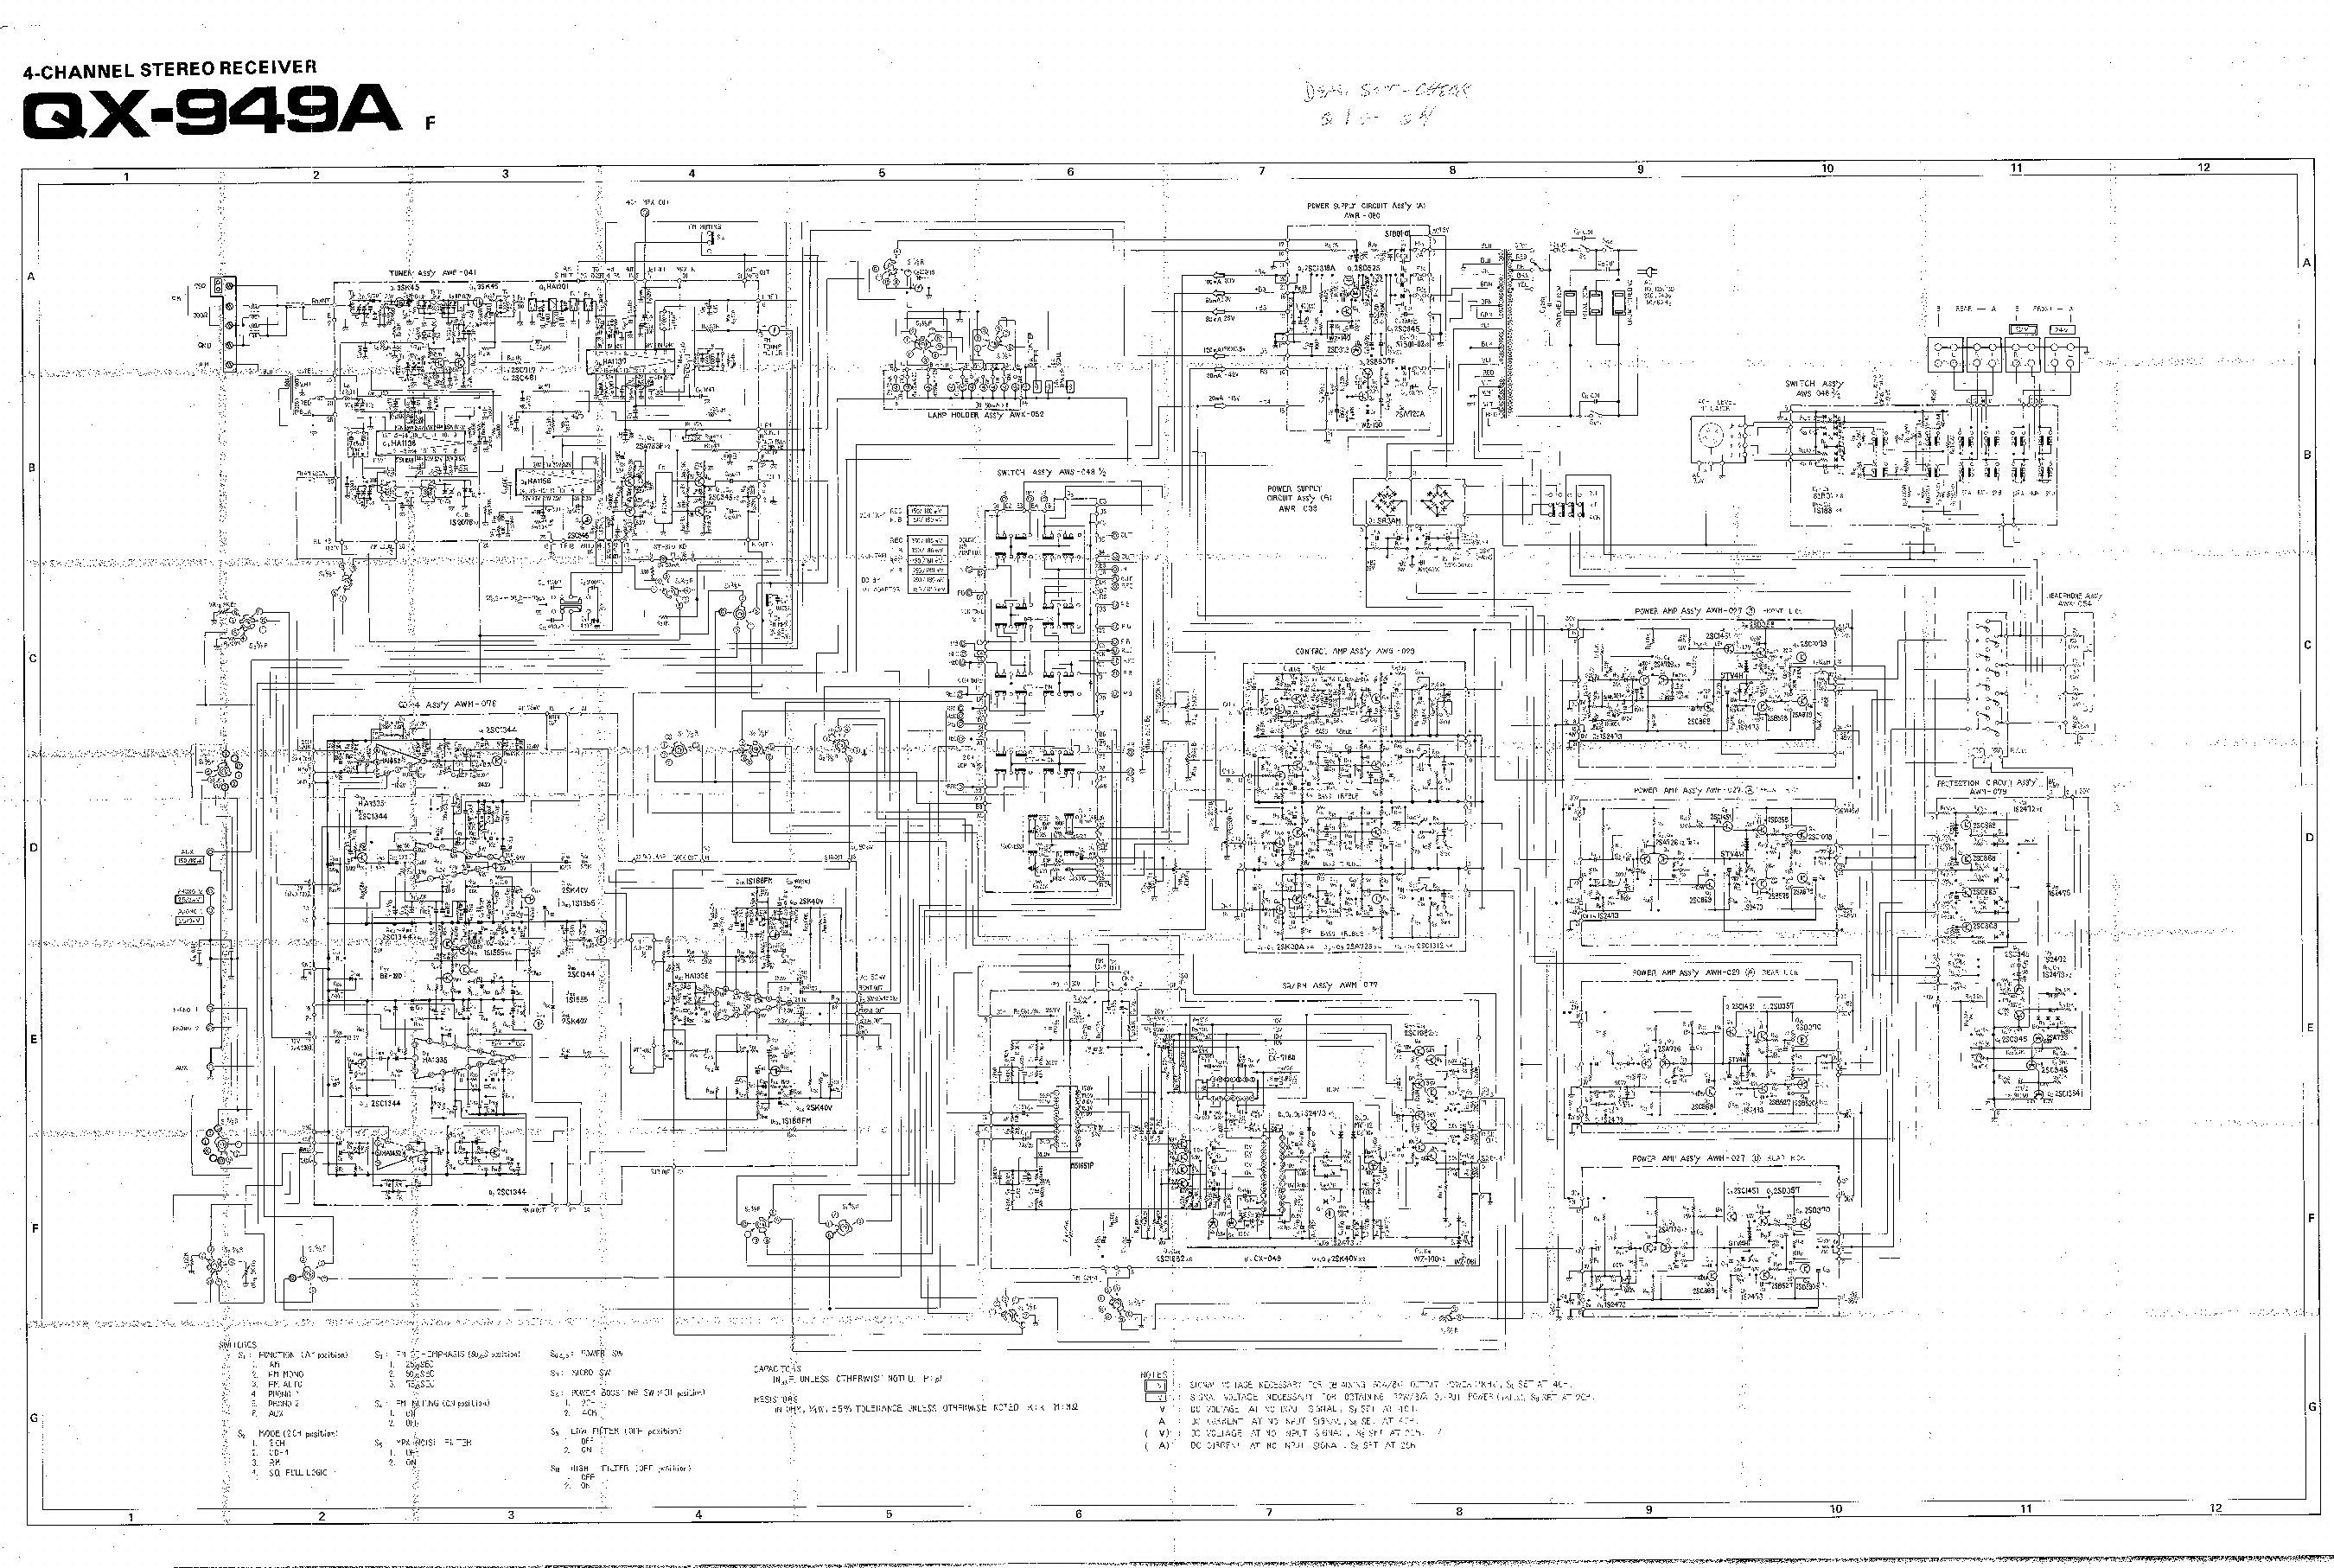 Sch A670 Wiring Diagram 4k Wallpapers Design Source · a670 pioneer qx 949a sch service manual